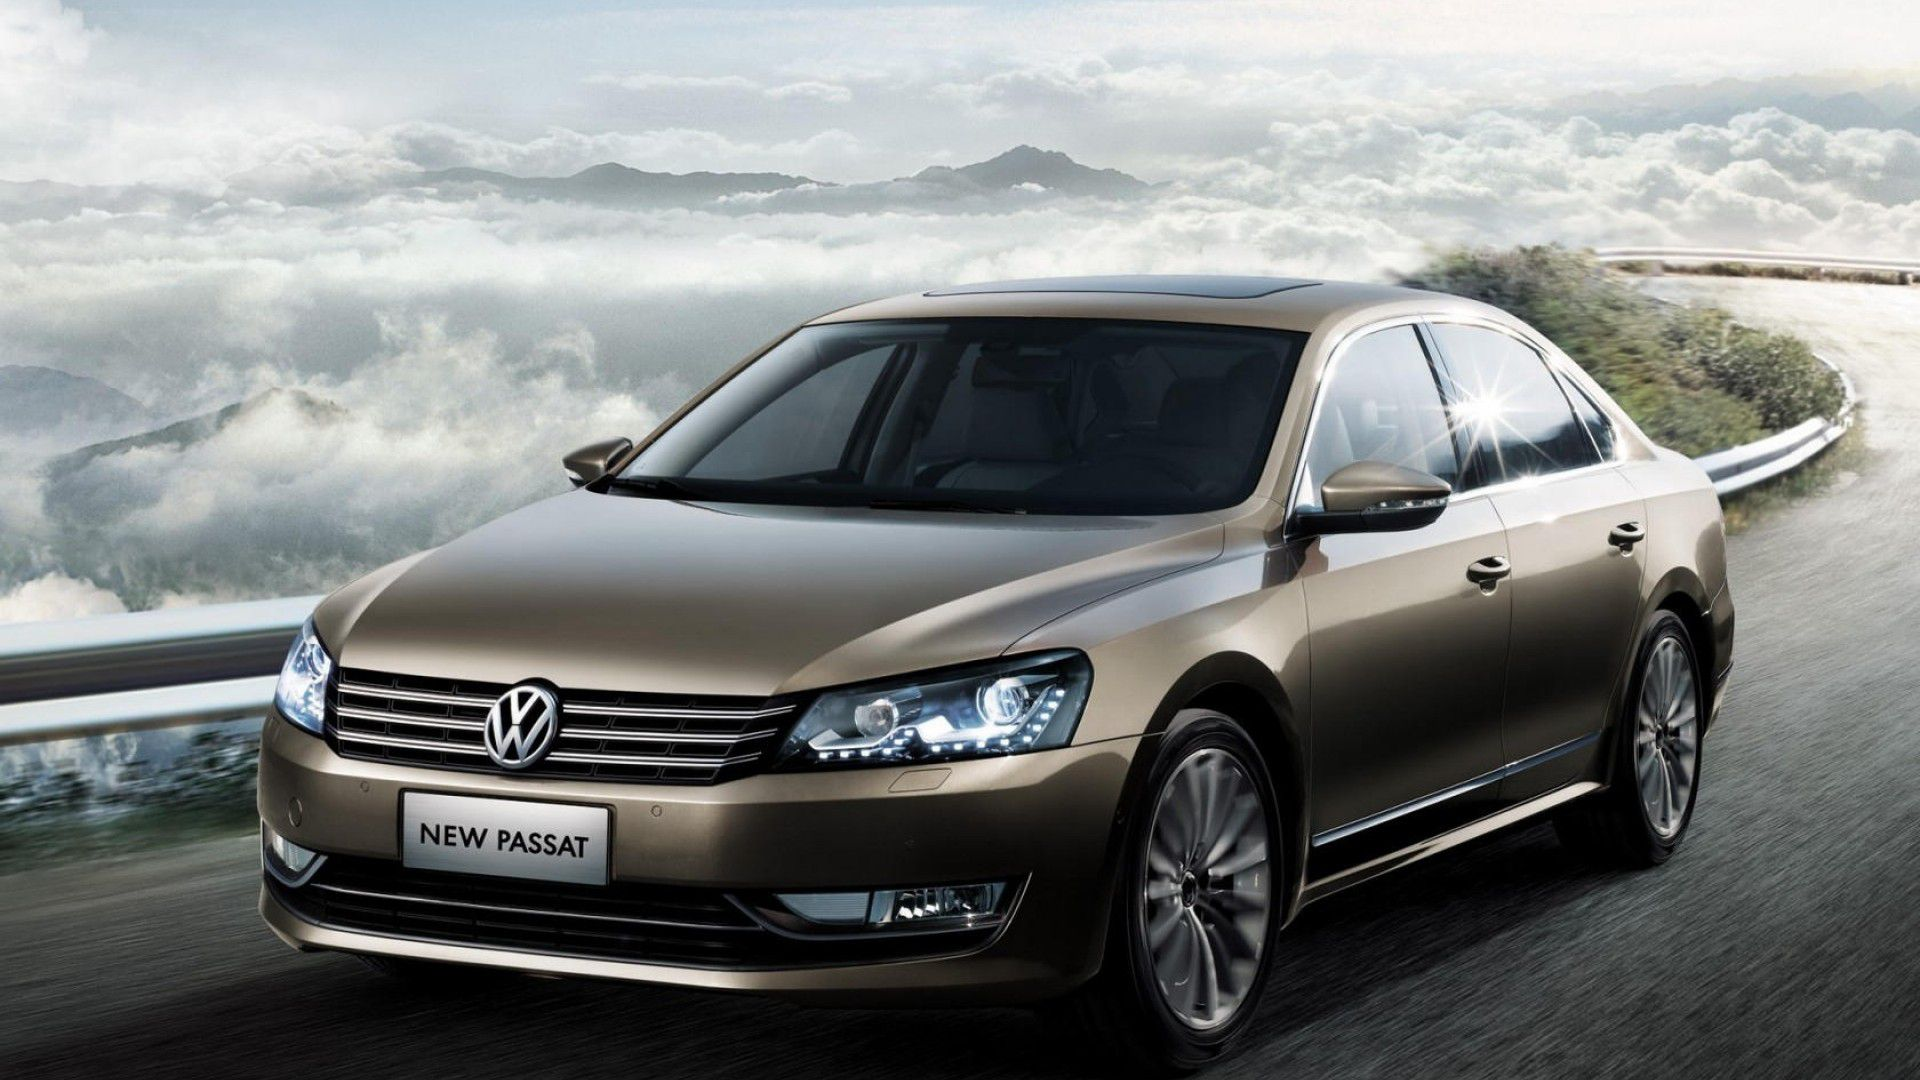 volkswagen passat b7 definitive list cars. Black Bedroom Furniture Sets. Home Design Ideas